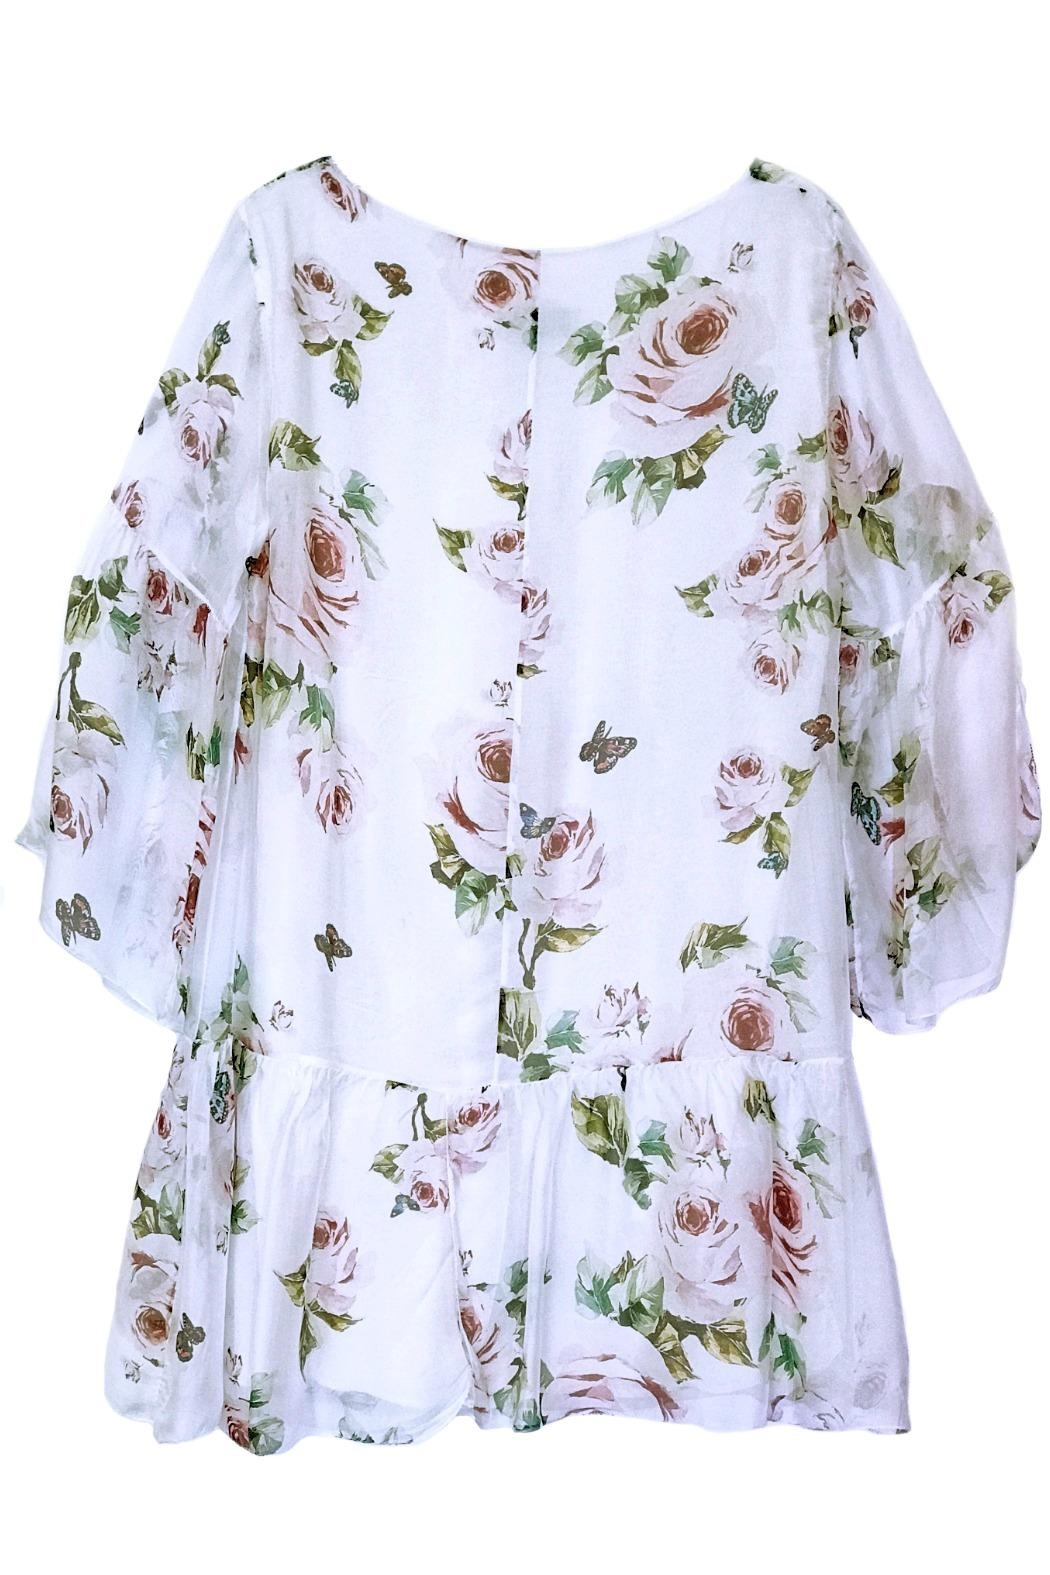 ANTONELLO SERIO Floral Print Dress - Front Full Image